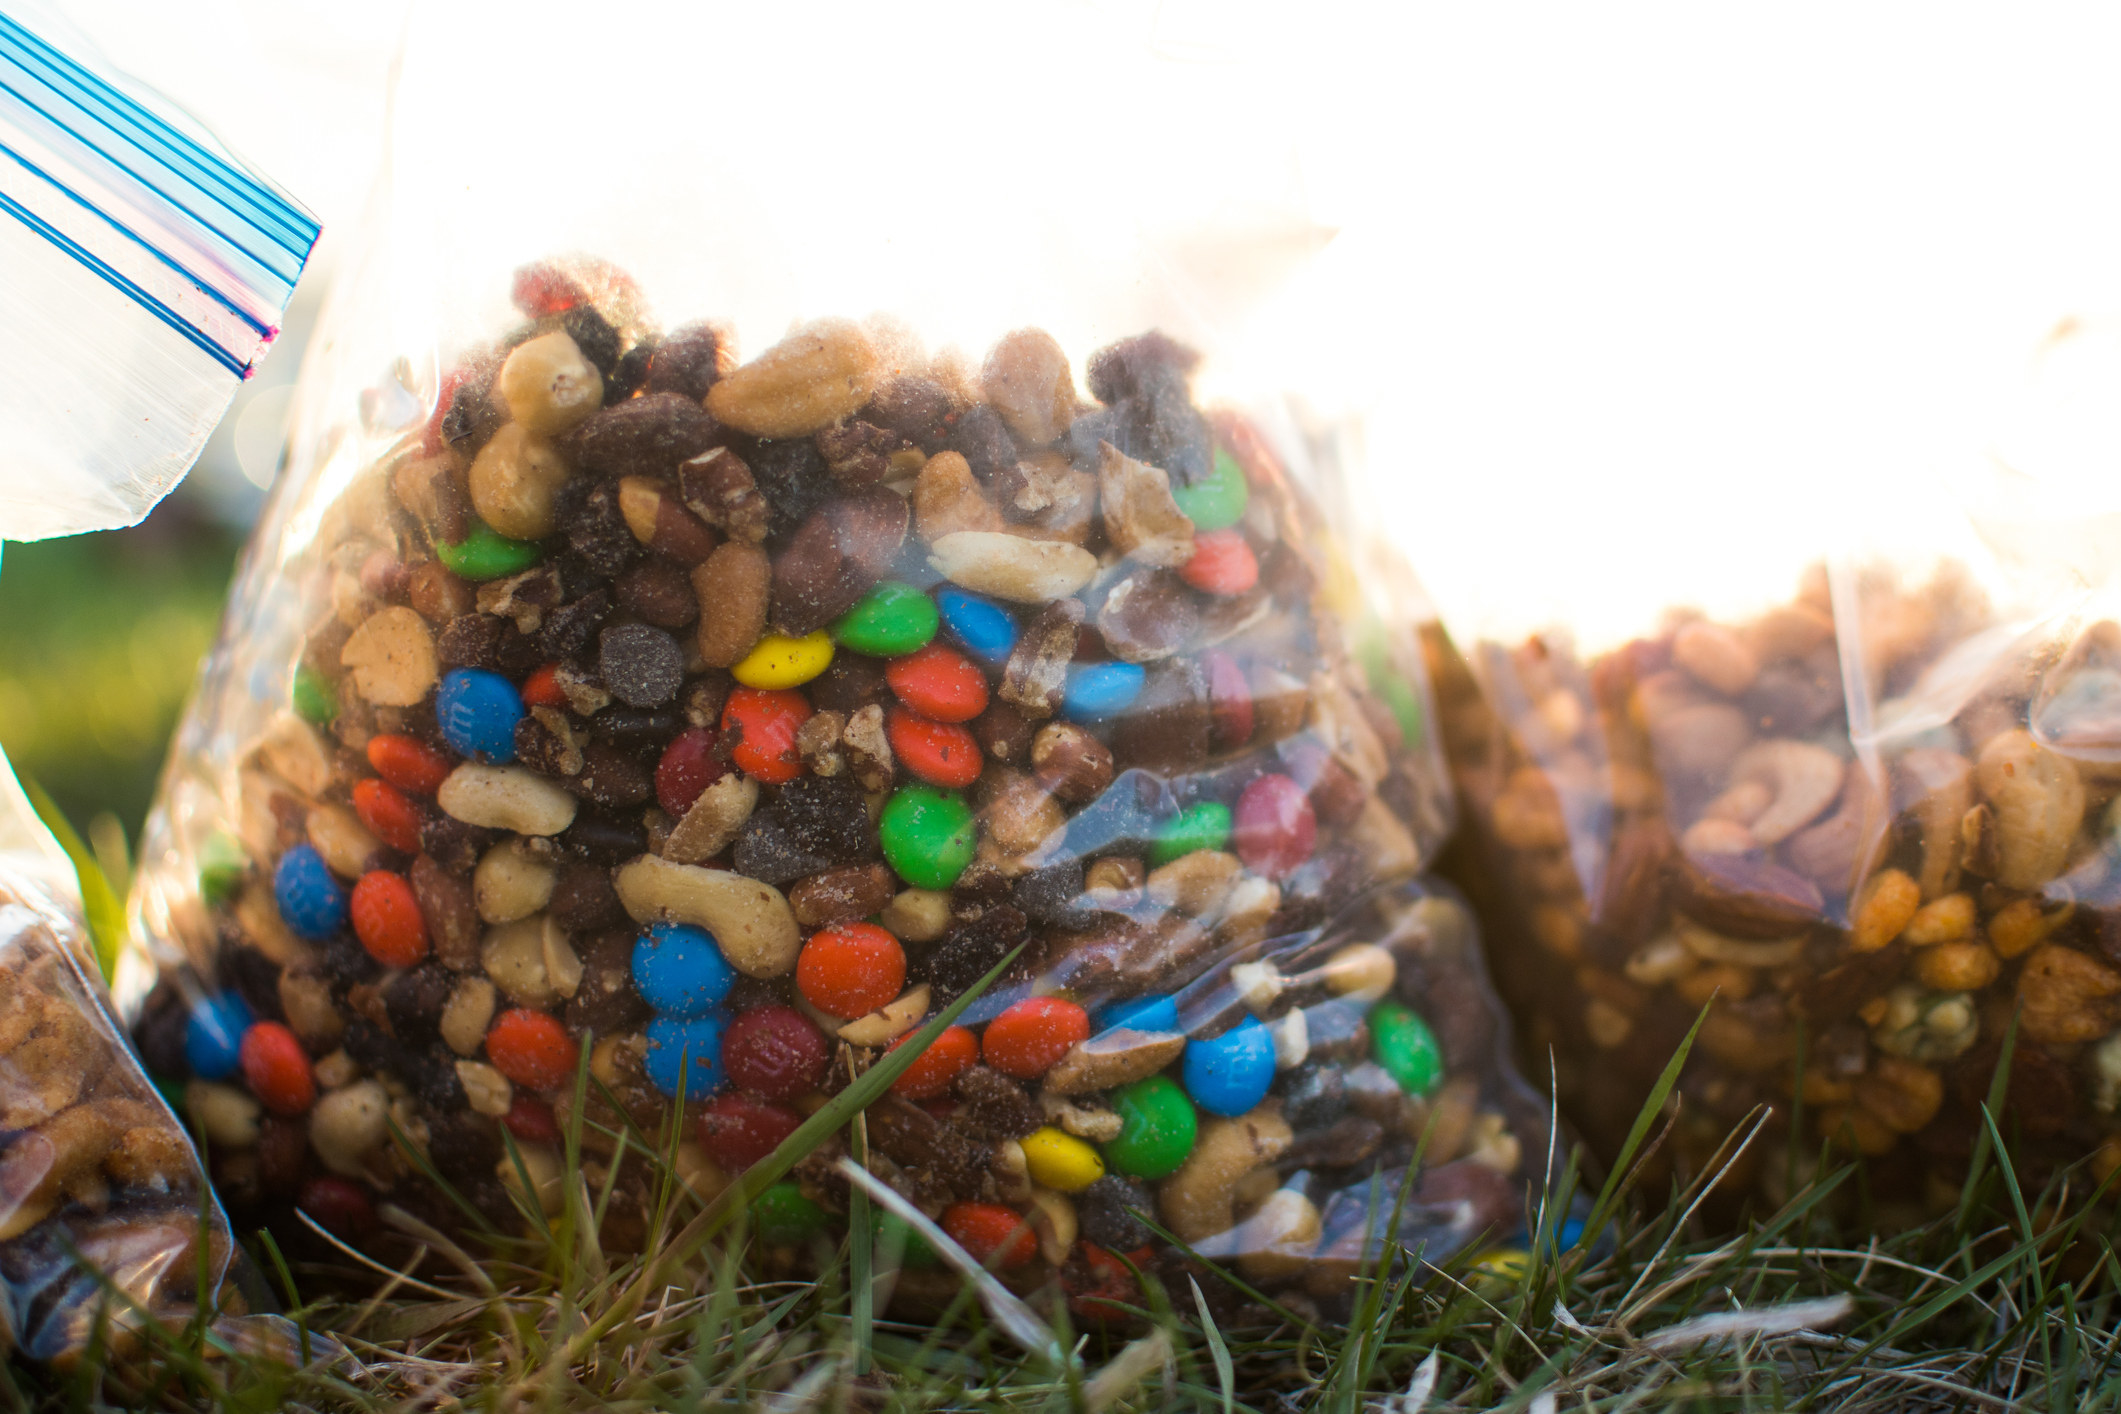 Two big bags of trail mix and nuts.